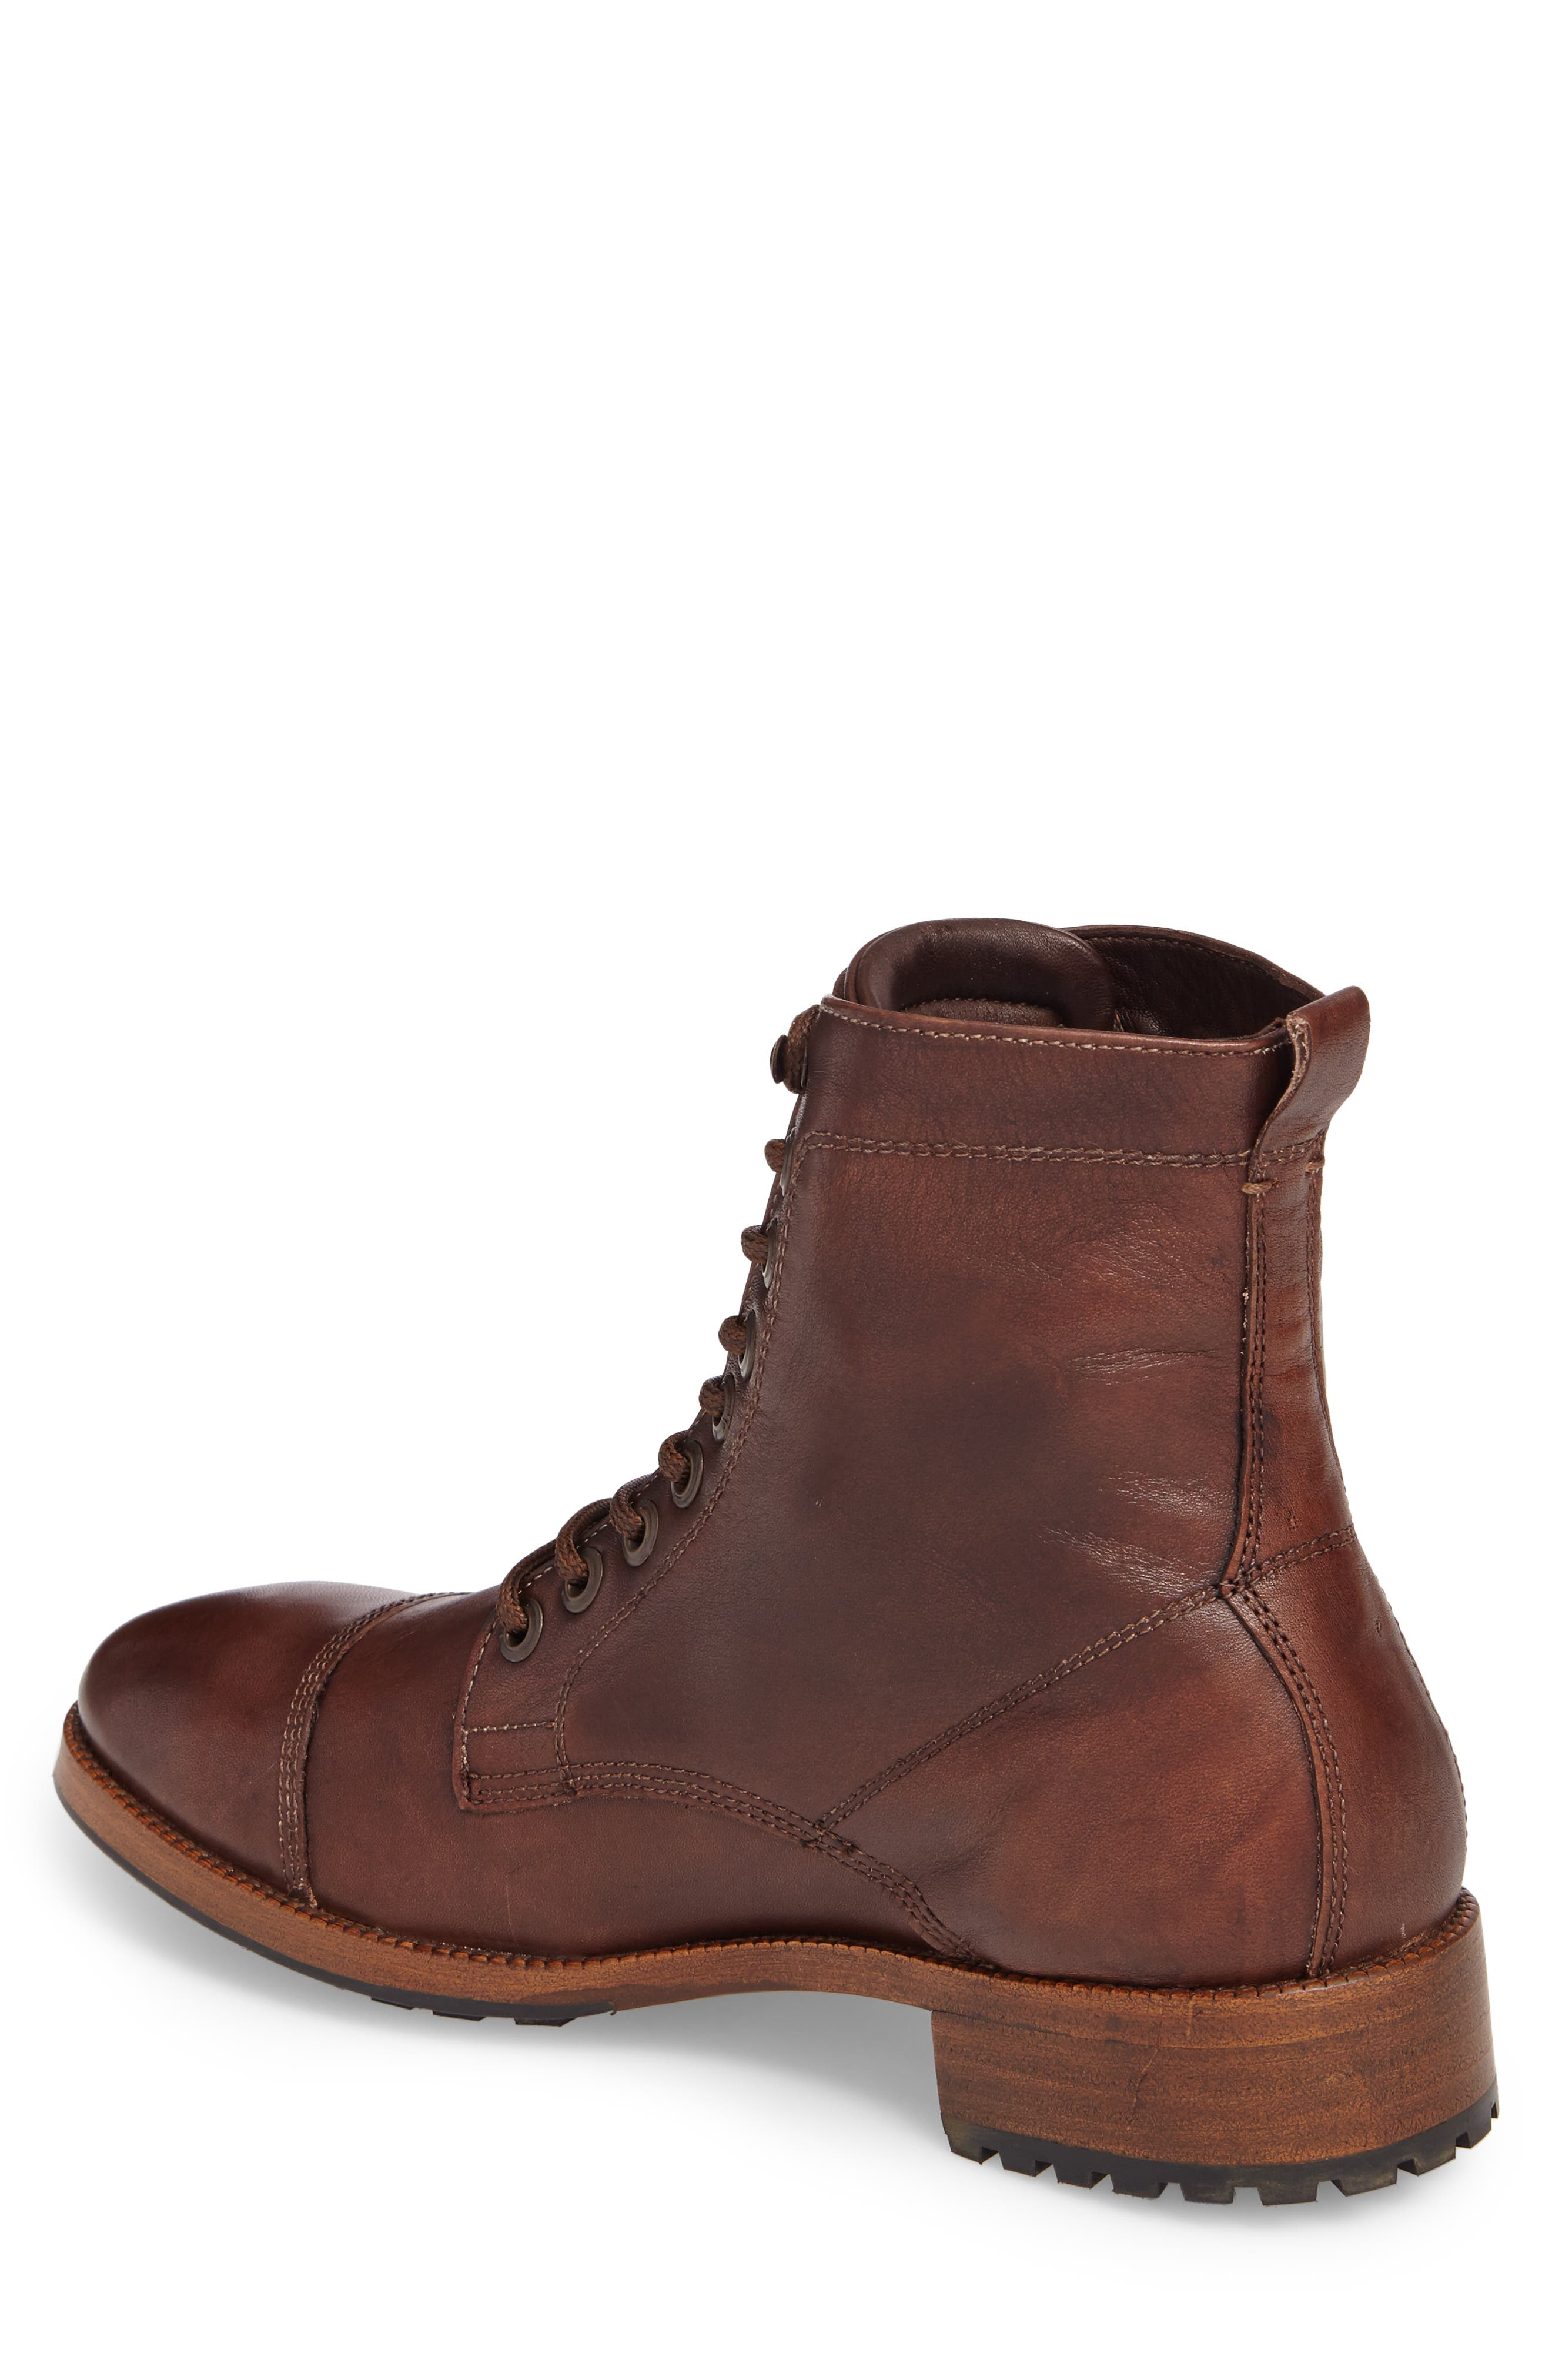 x GQ Ted Cap Toe Boot,                             Alternate thumbnail 2, color,                             200